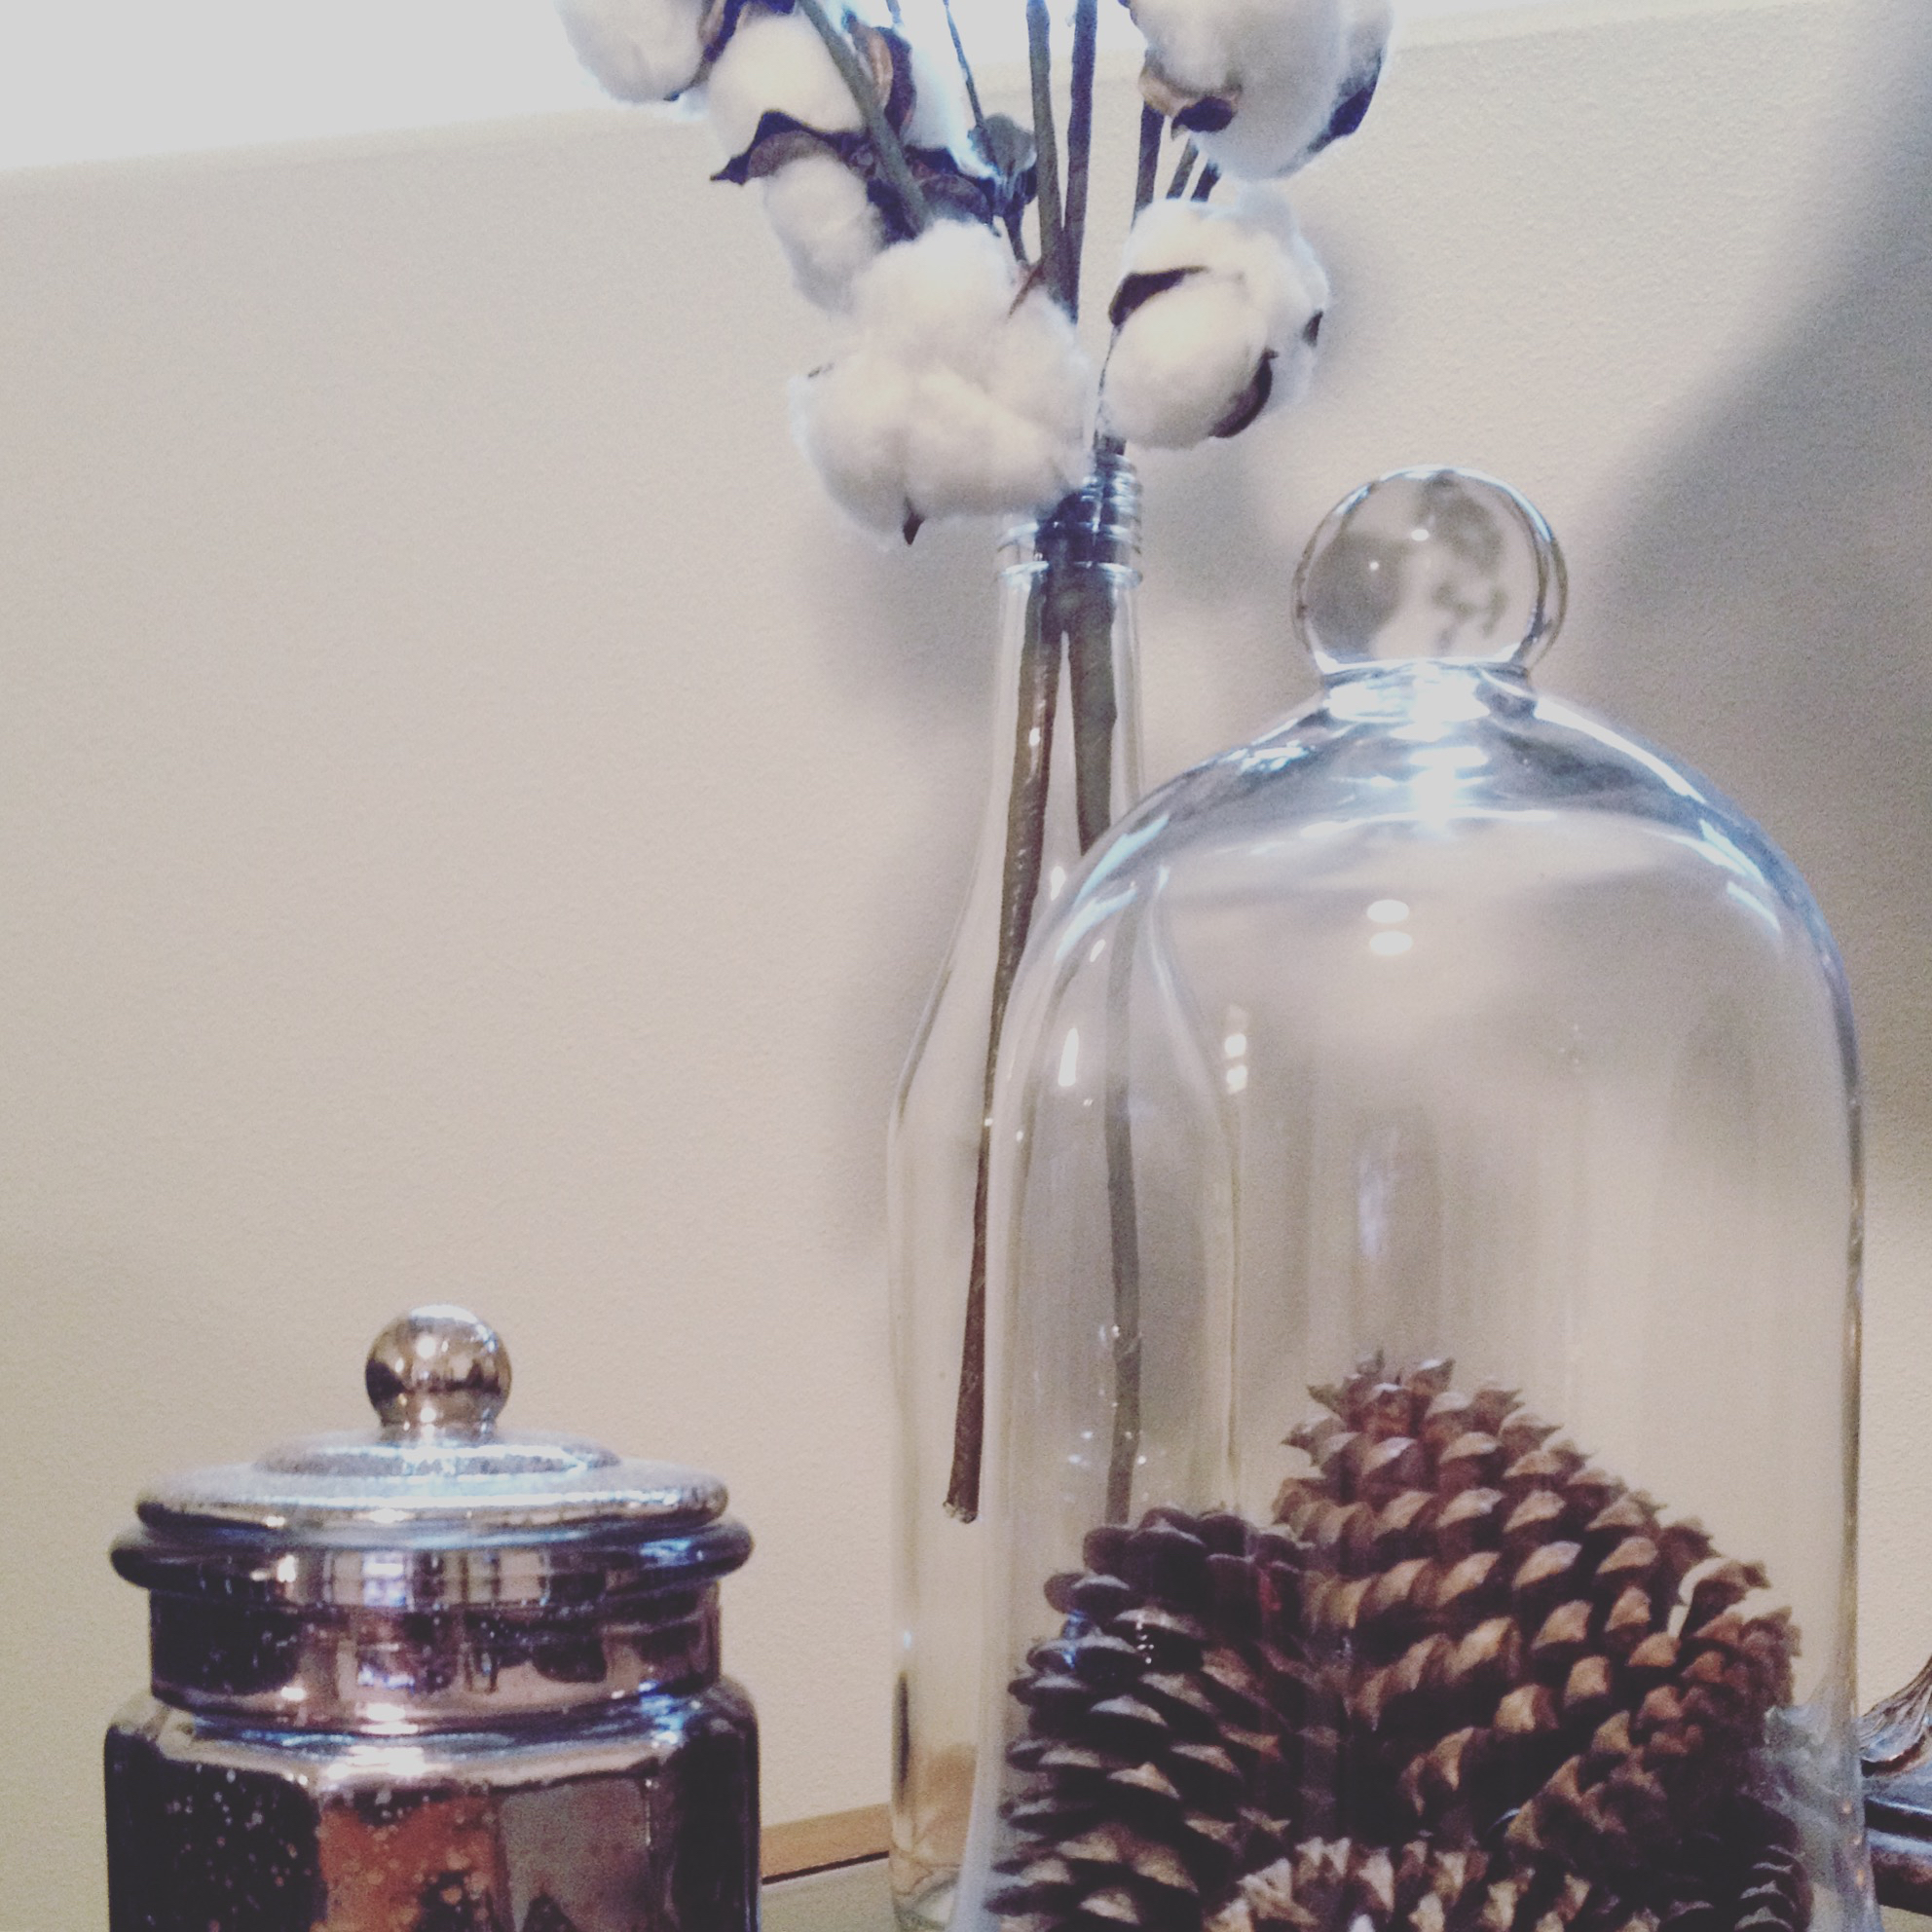 Hobby lobby glass ornaments -  Hobby Lobby Normally Has A Lot Of Mercury Glass Ornaments Five Years Ago I Gathered Acorns And Pinecones And Have Been Using The Same Ones Ever Since